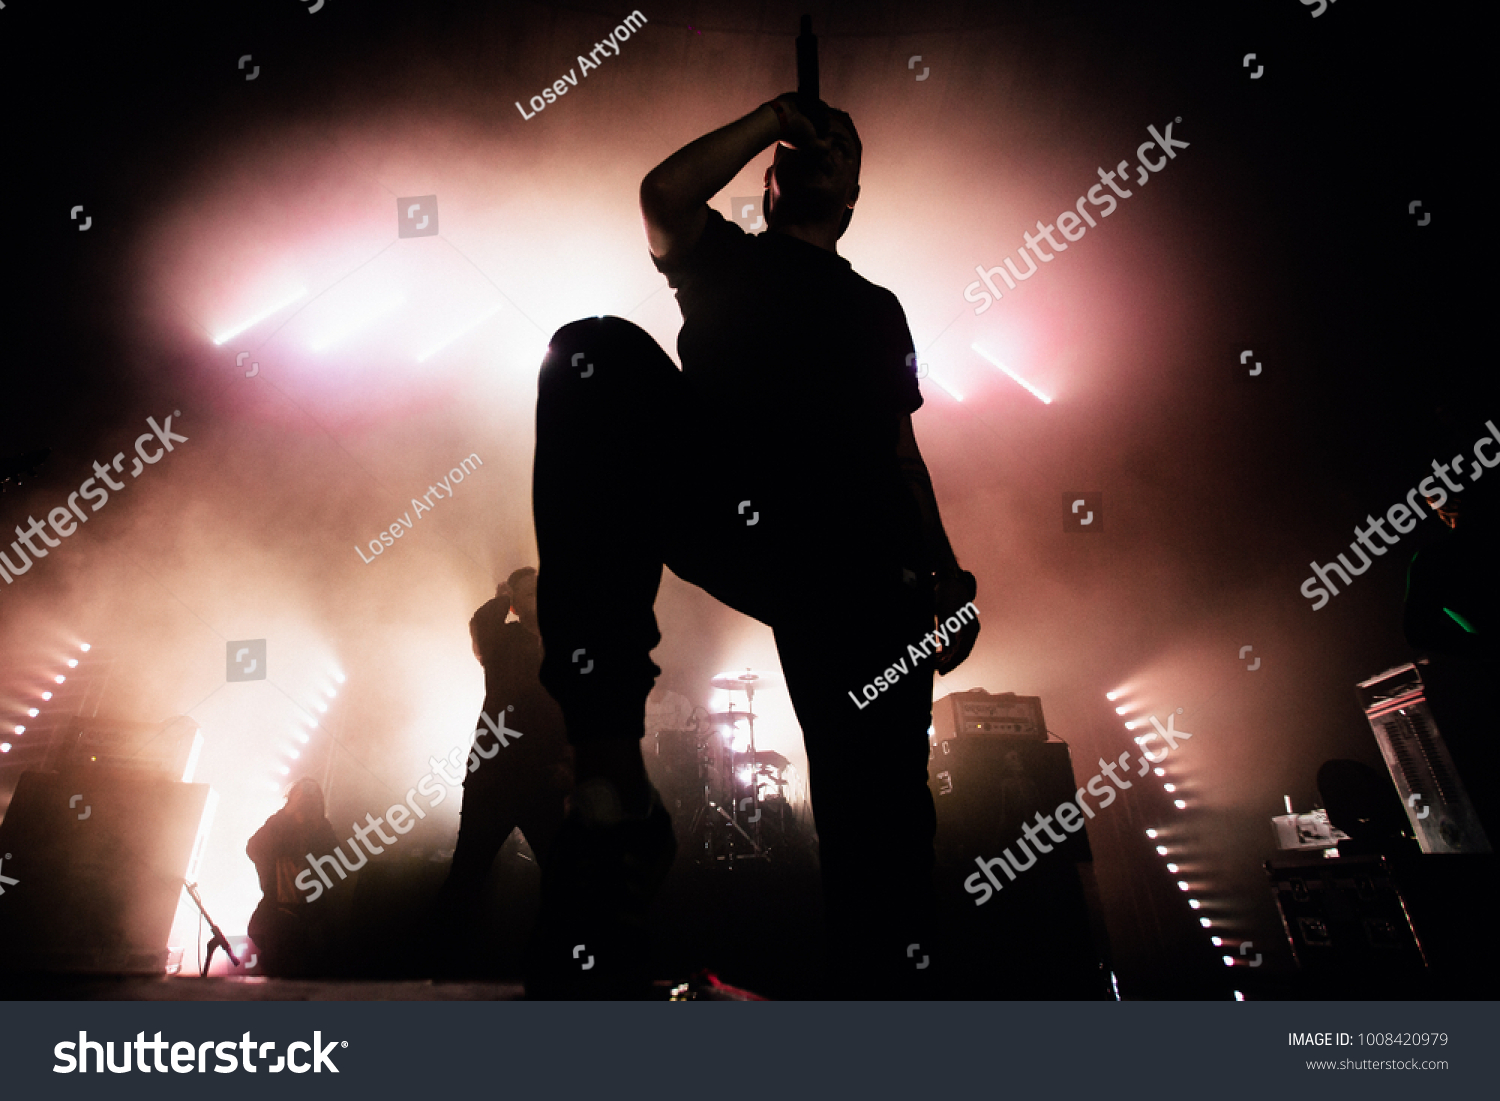 A dark silhouette of a singer on the stage. Good-looking background, bright stag lights. A concert of a famous music band #1008420979